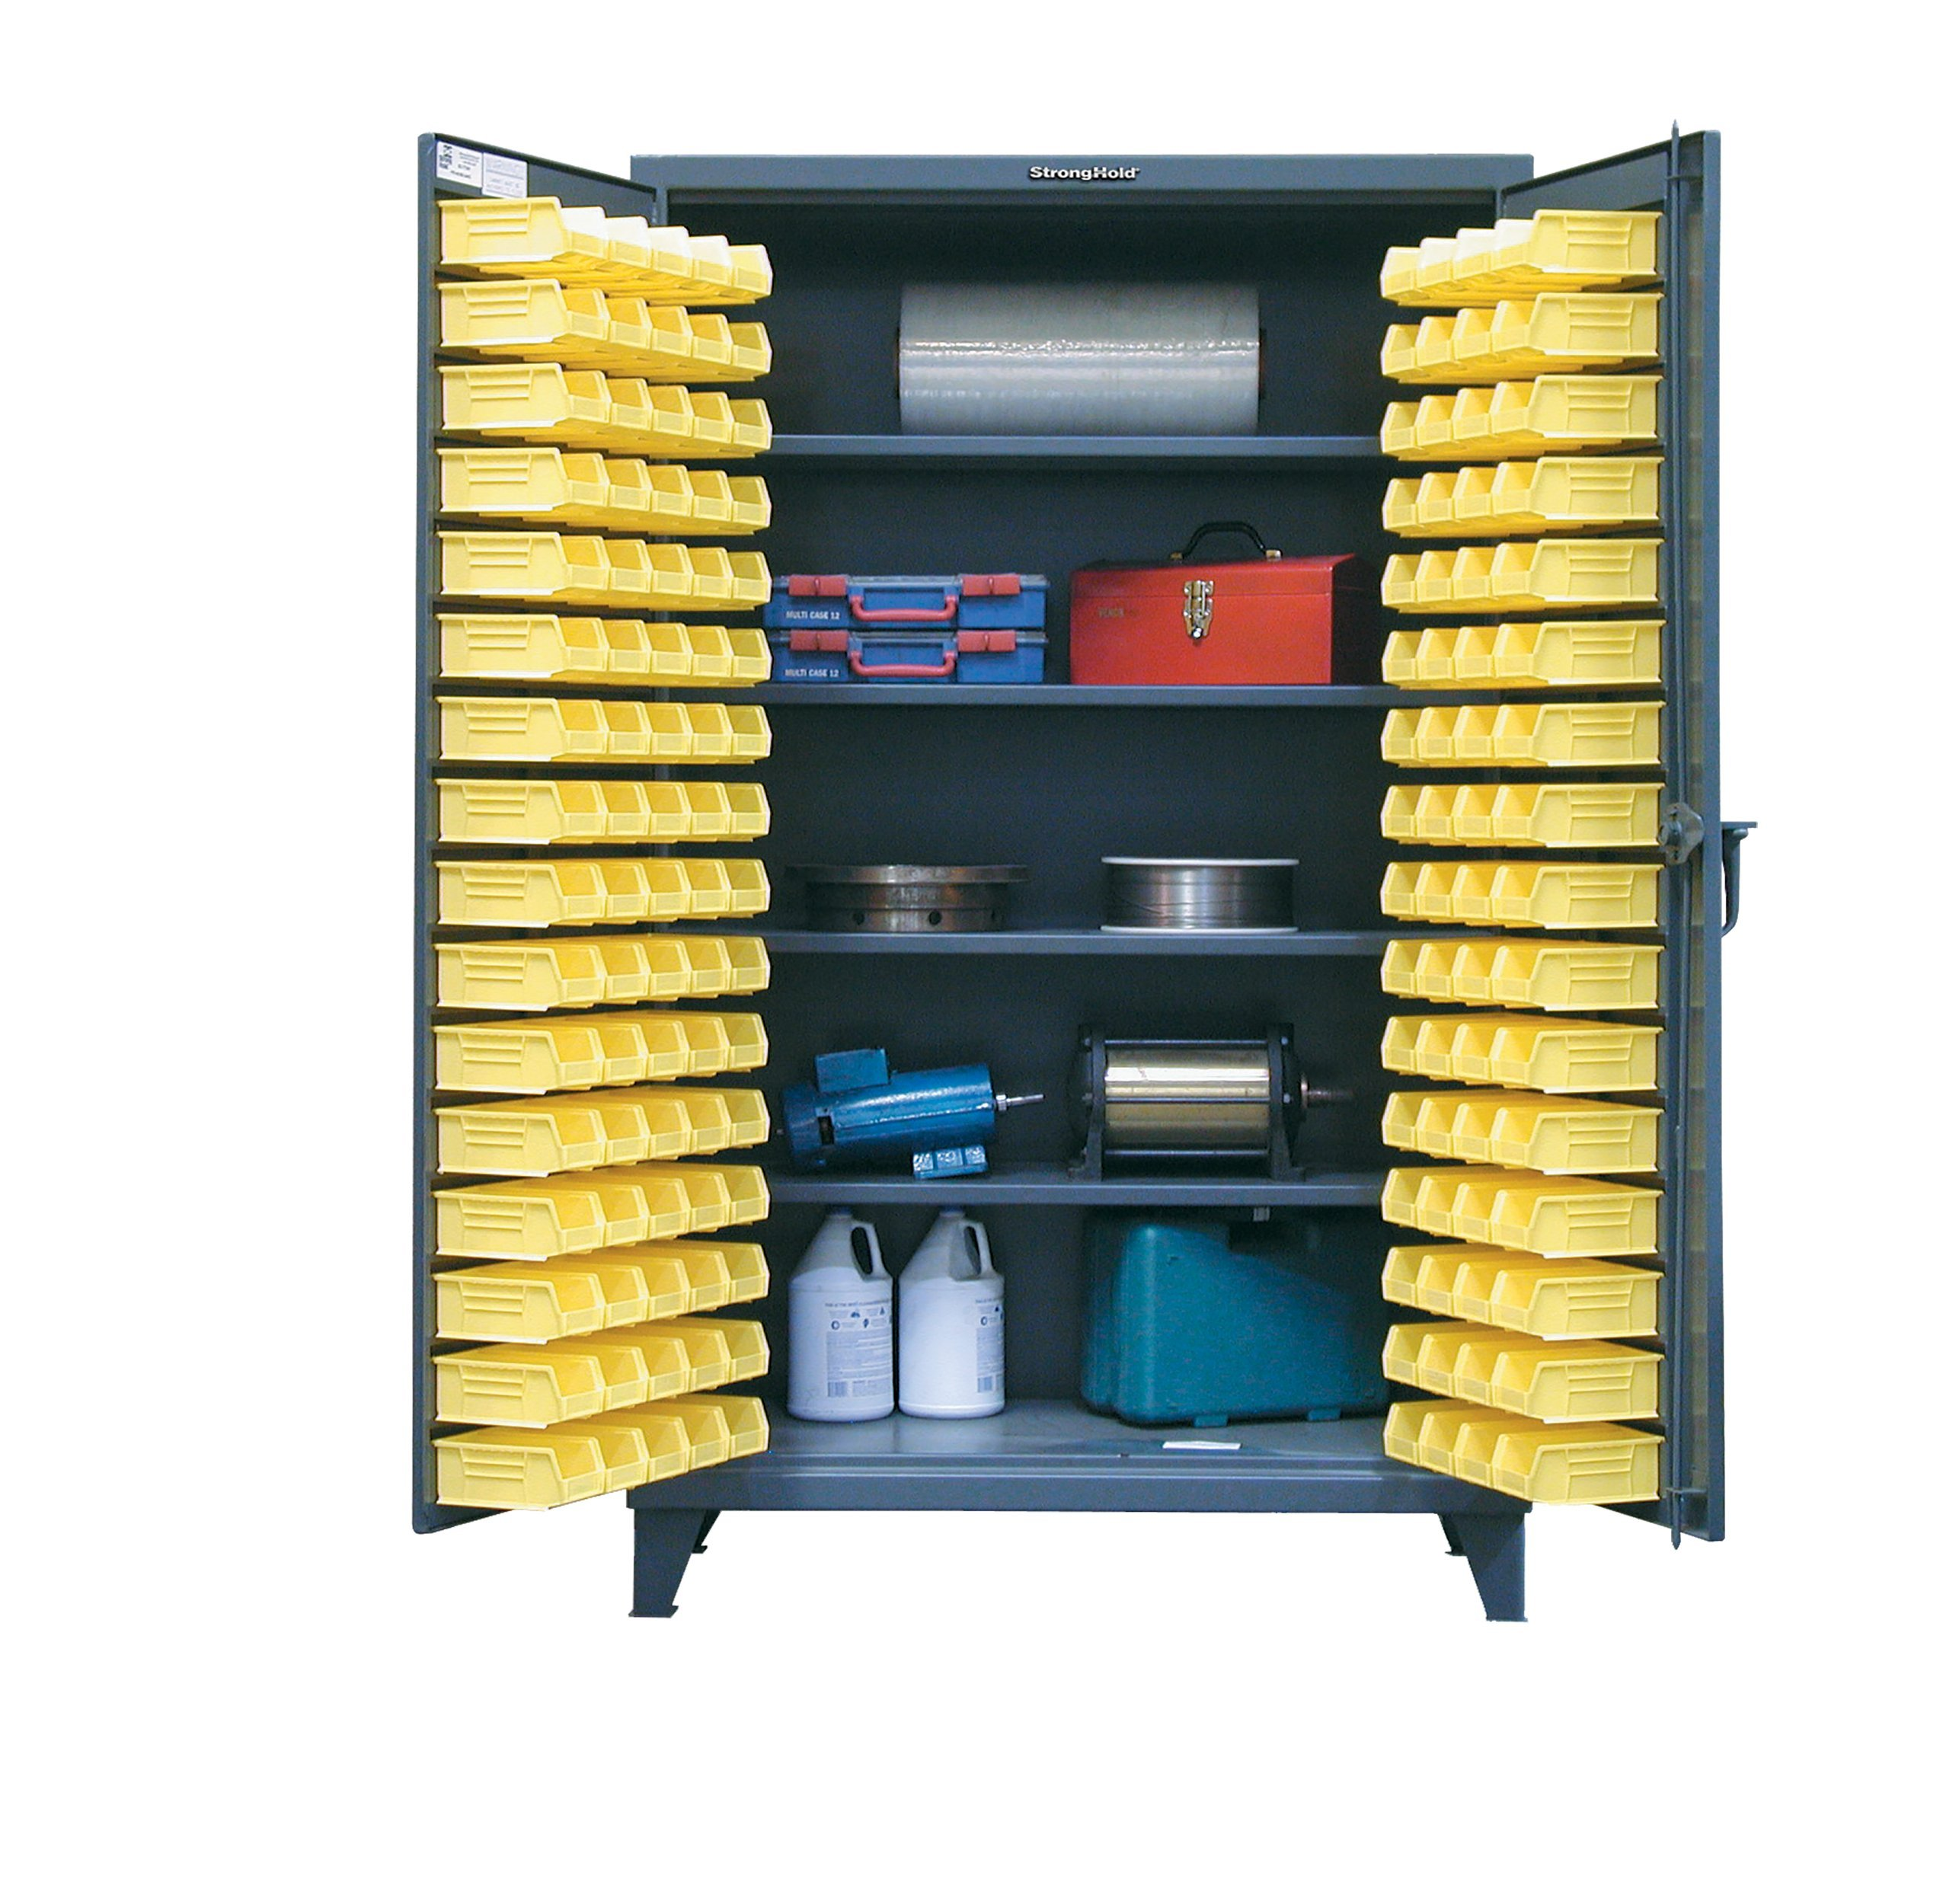 Strong Hold, 48''W x 24''D x 78''H, Bin Cabinet, 144 Small-Parts Storage Bins (Included), Heavy-Duty, Welded and Assembled, 12-Gauge Steel, 4 Adjustable Shelves 1,200 lbs. Capacity